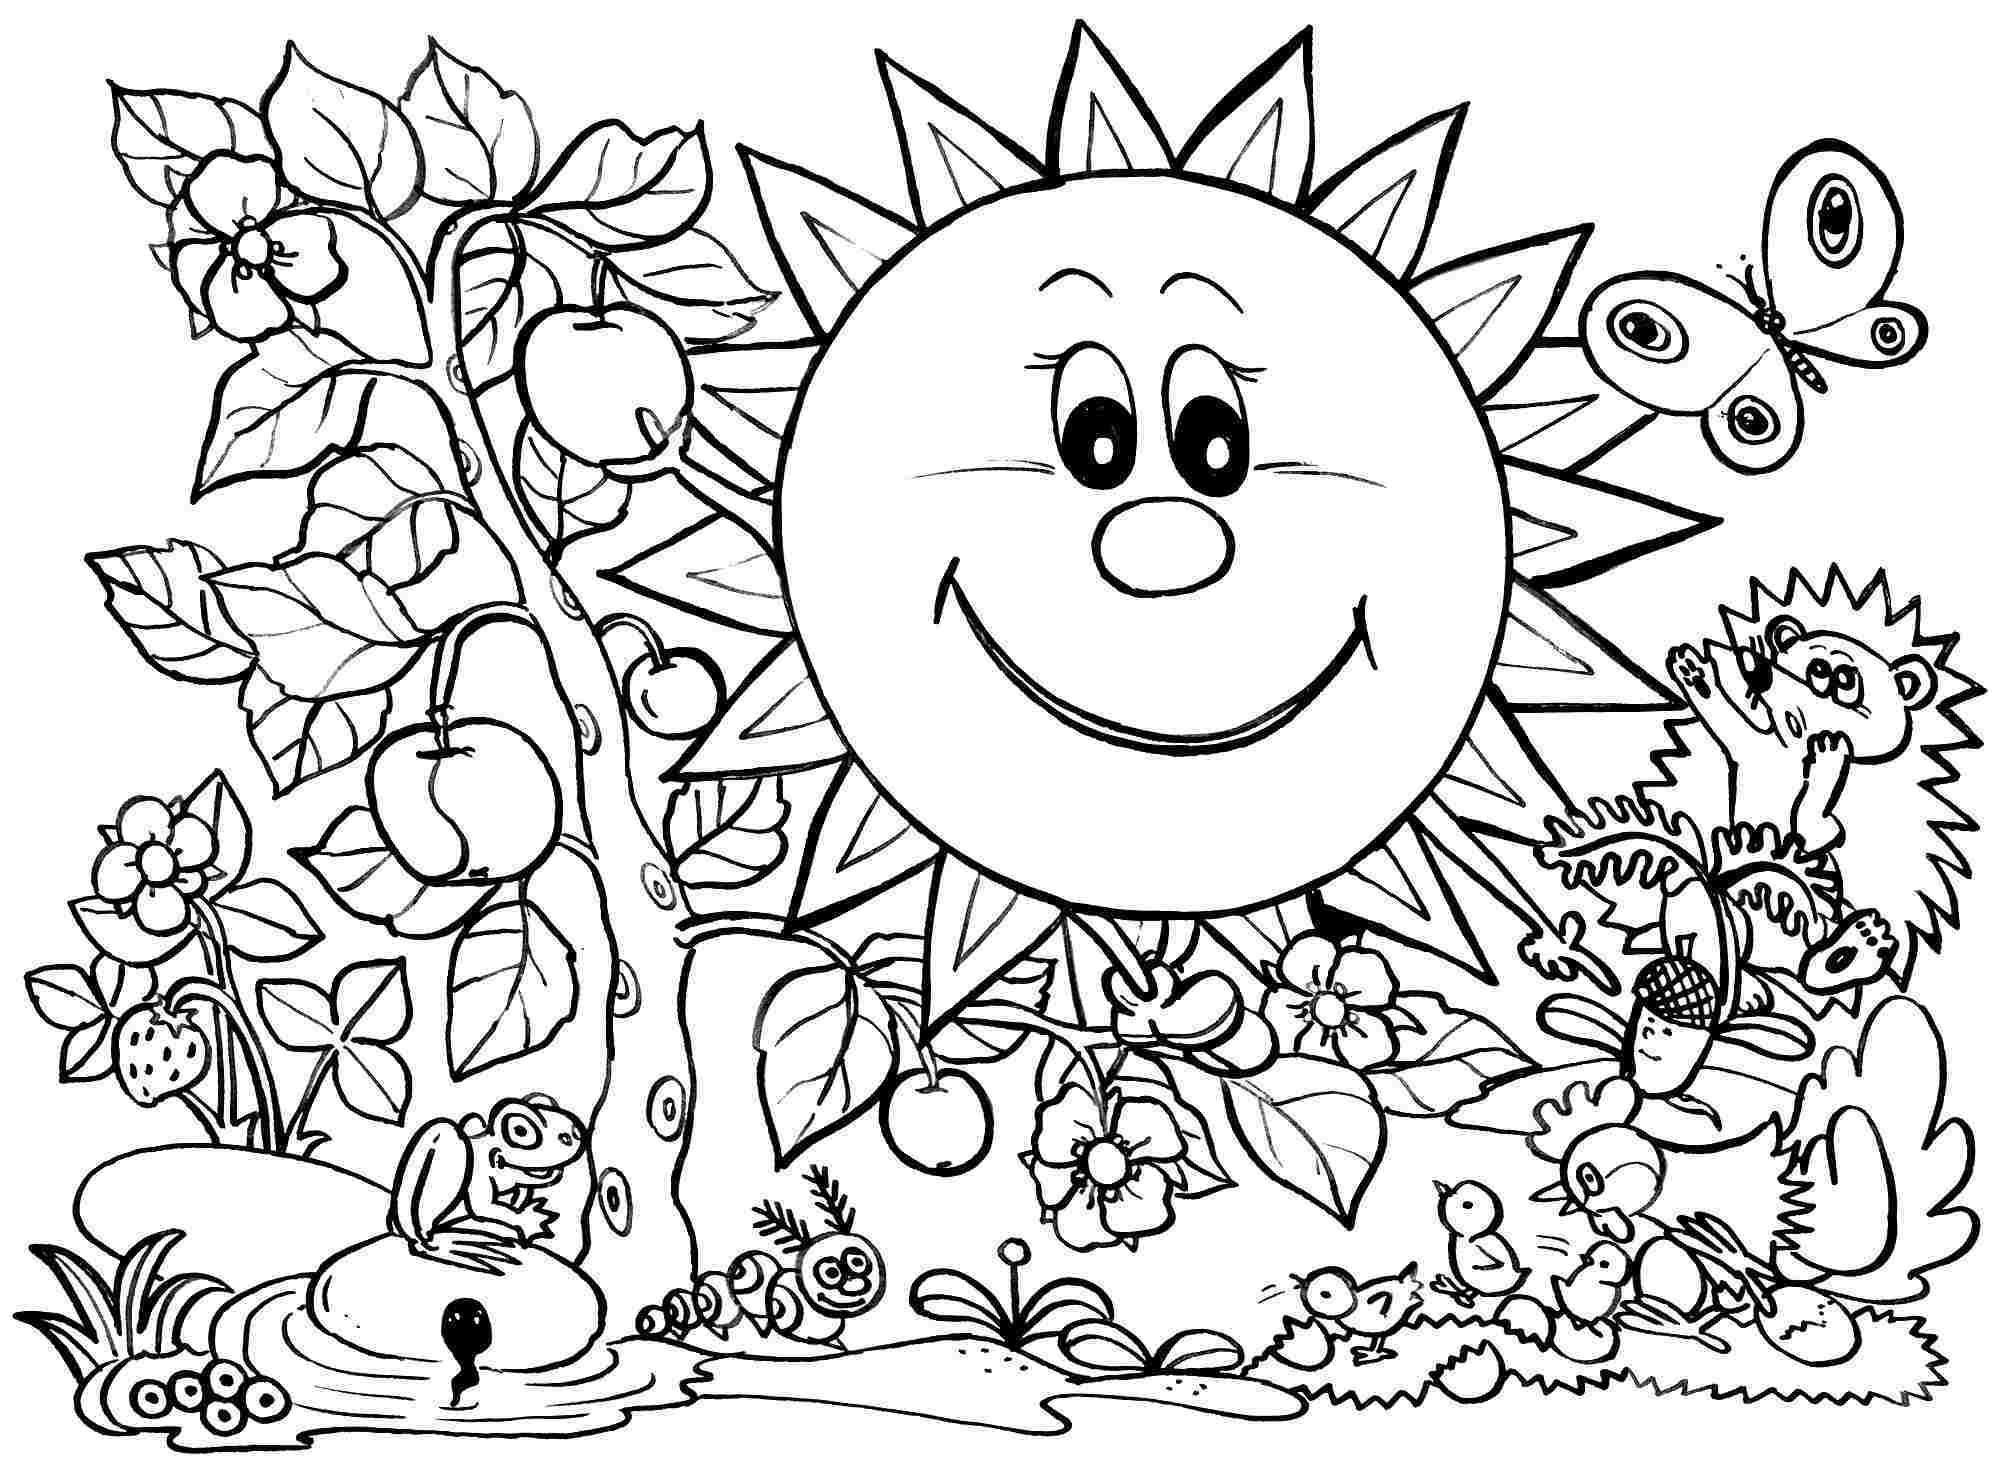 Mindfulness Coloring Pages At Getdrawings